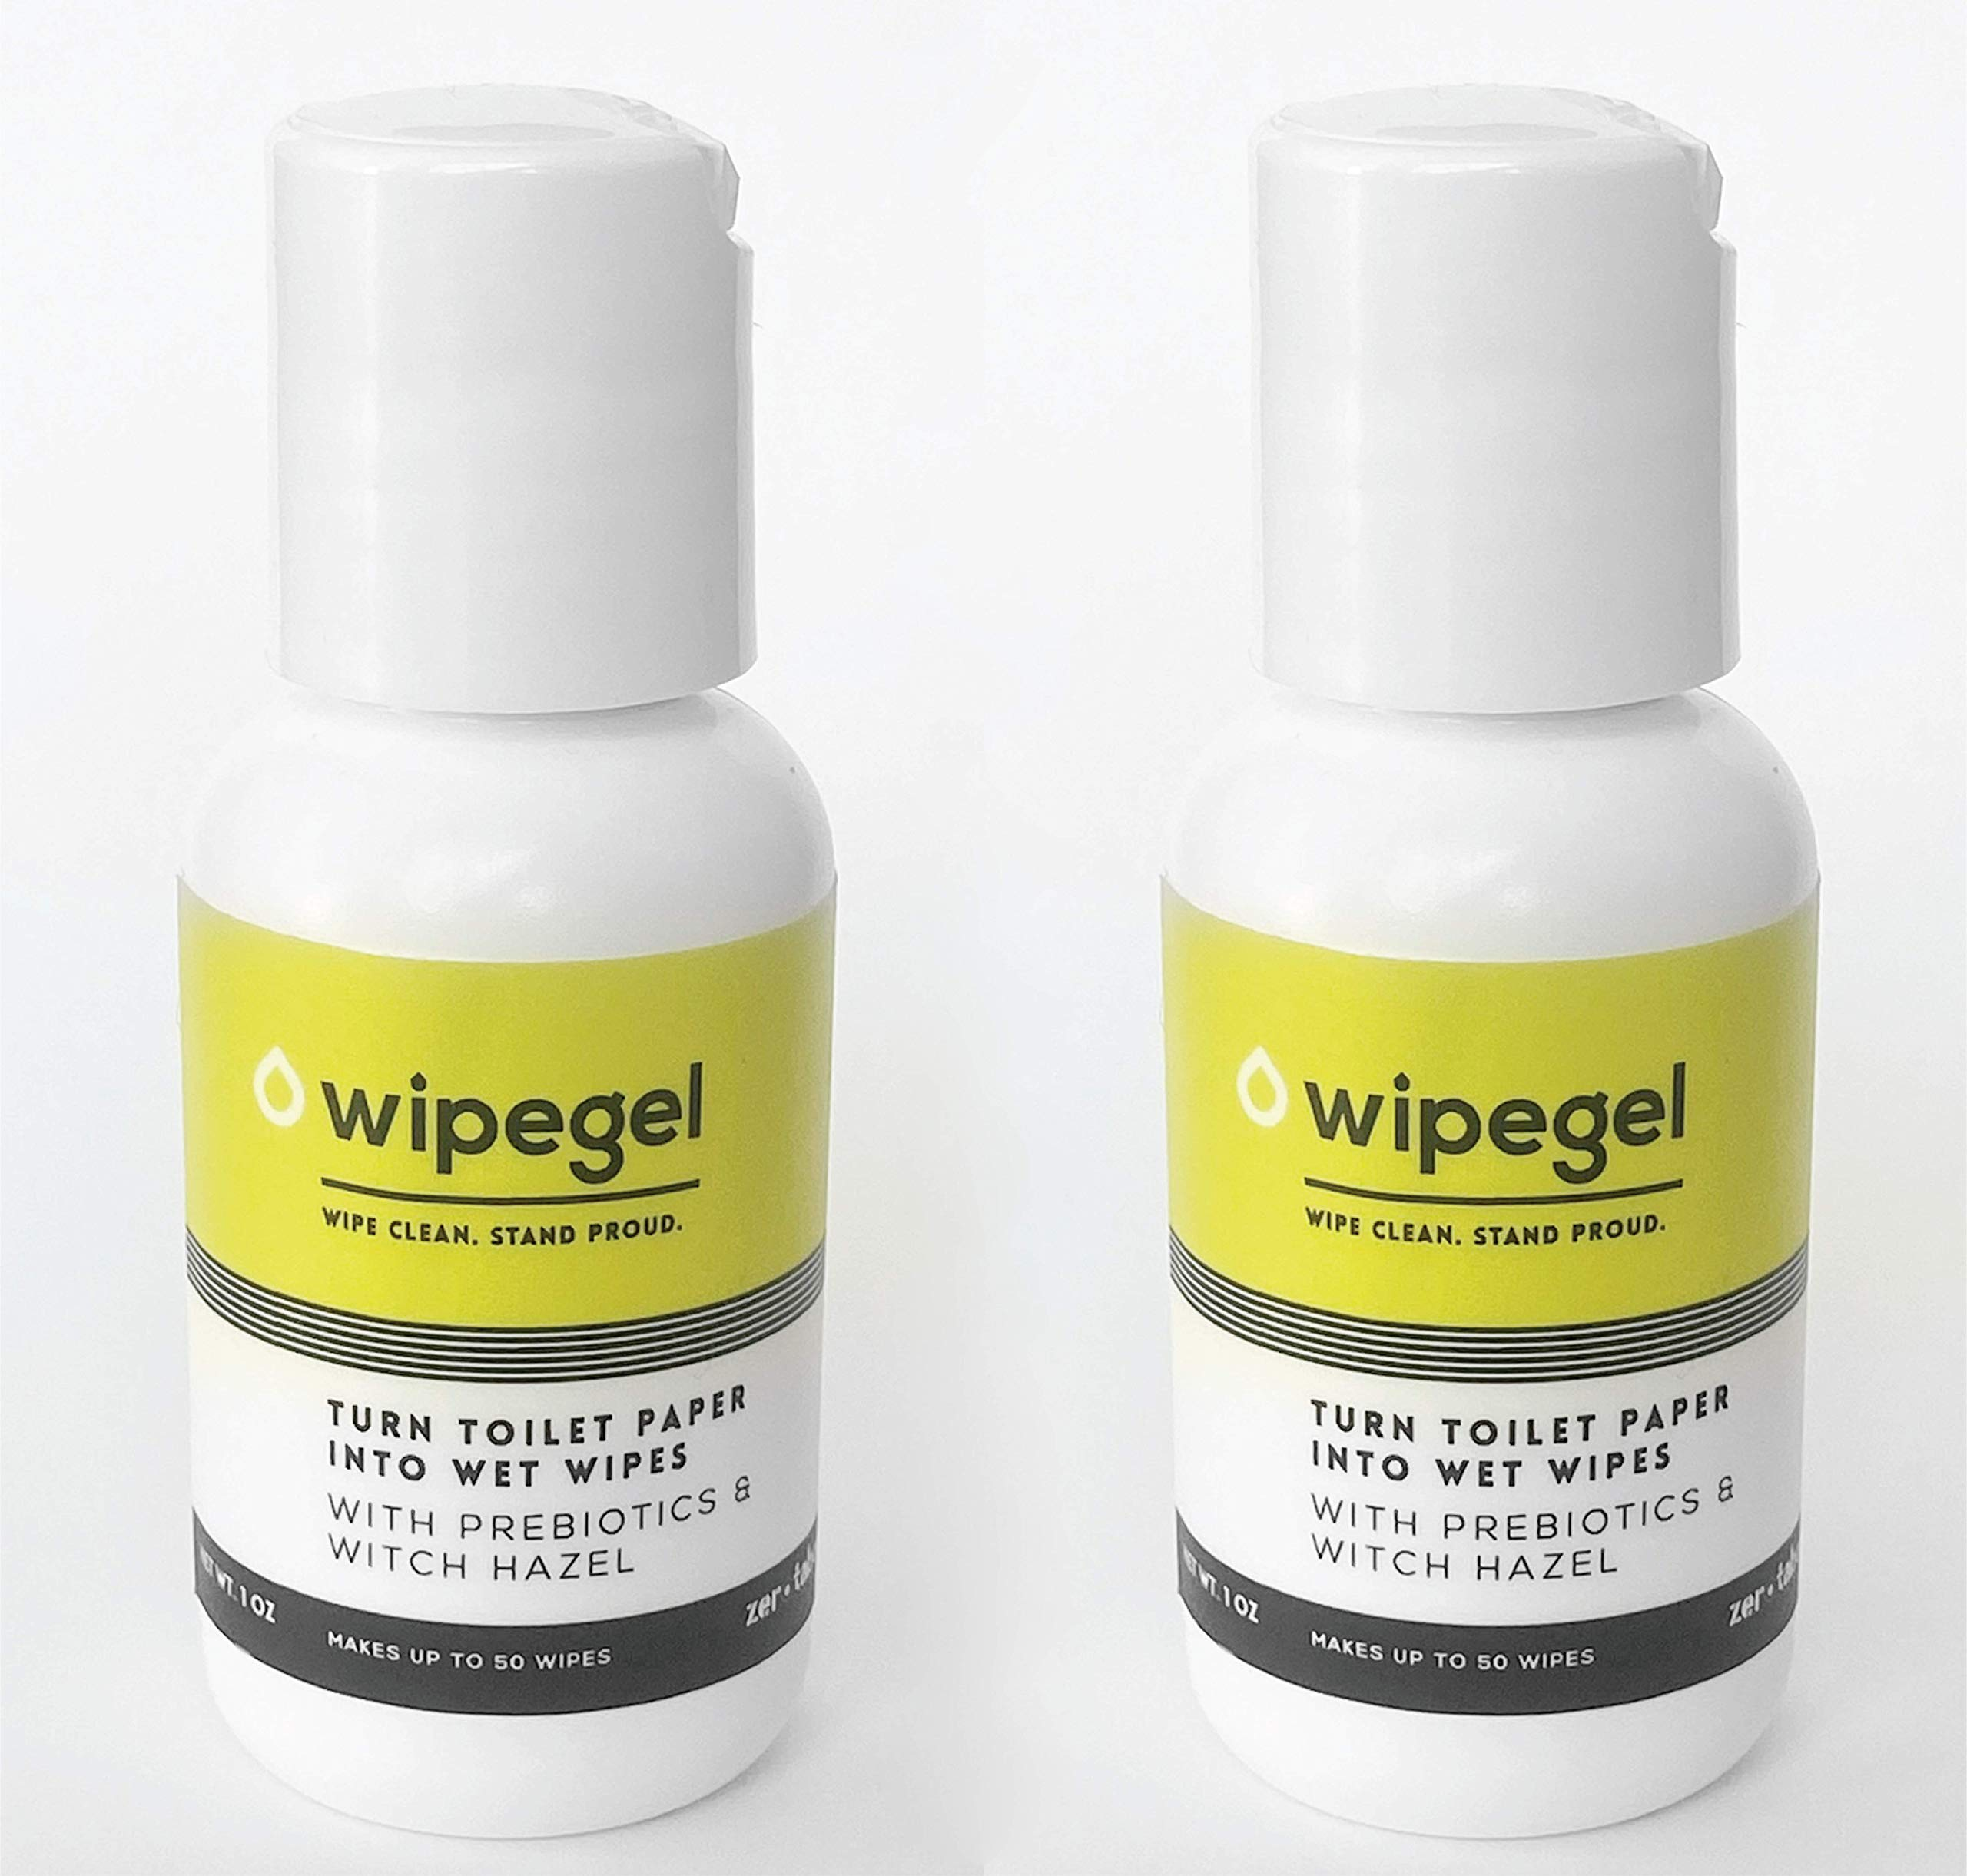 Wipegel: Travel Size. Pack of 2, Makes up to 100 Wipes